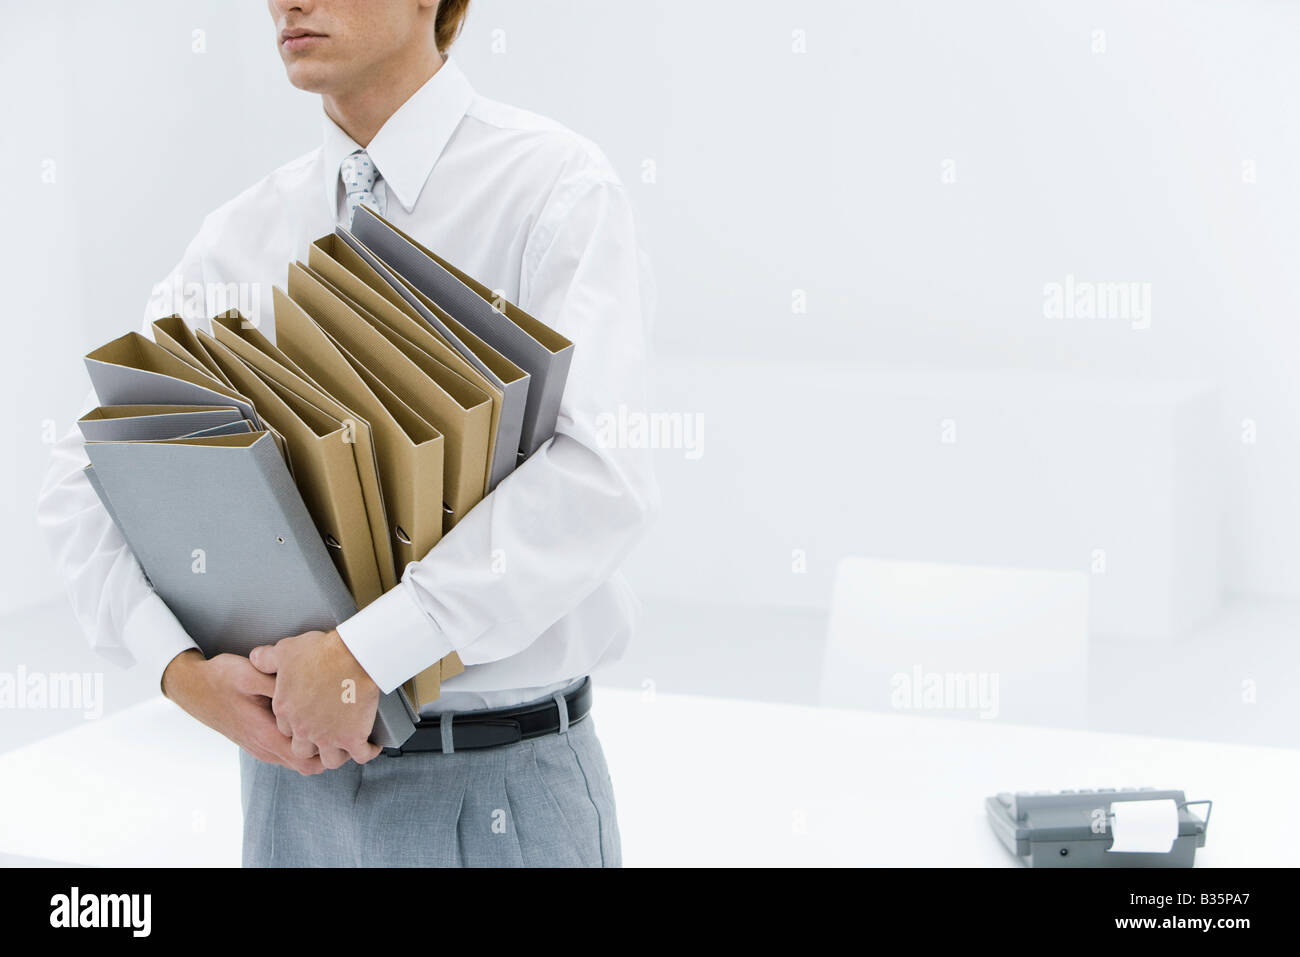 Office worker carrying many binders, cropped view - Stock Image